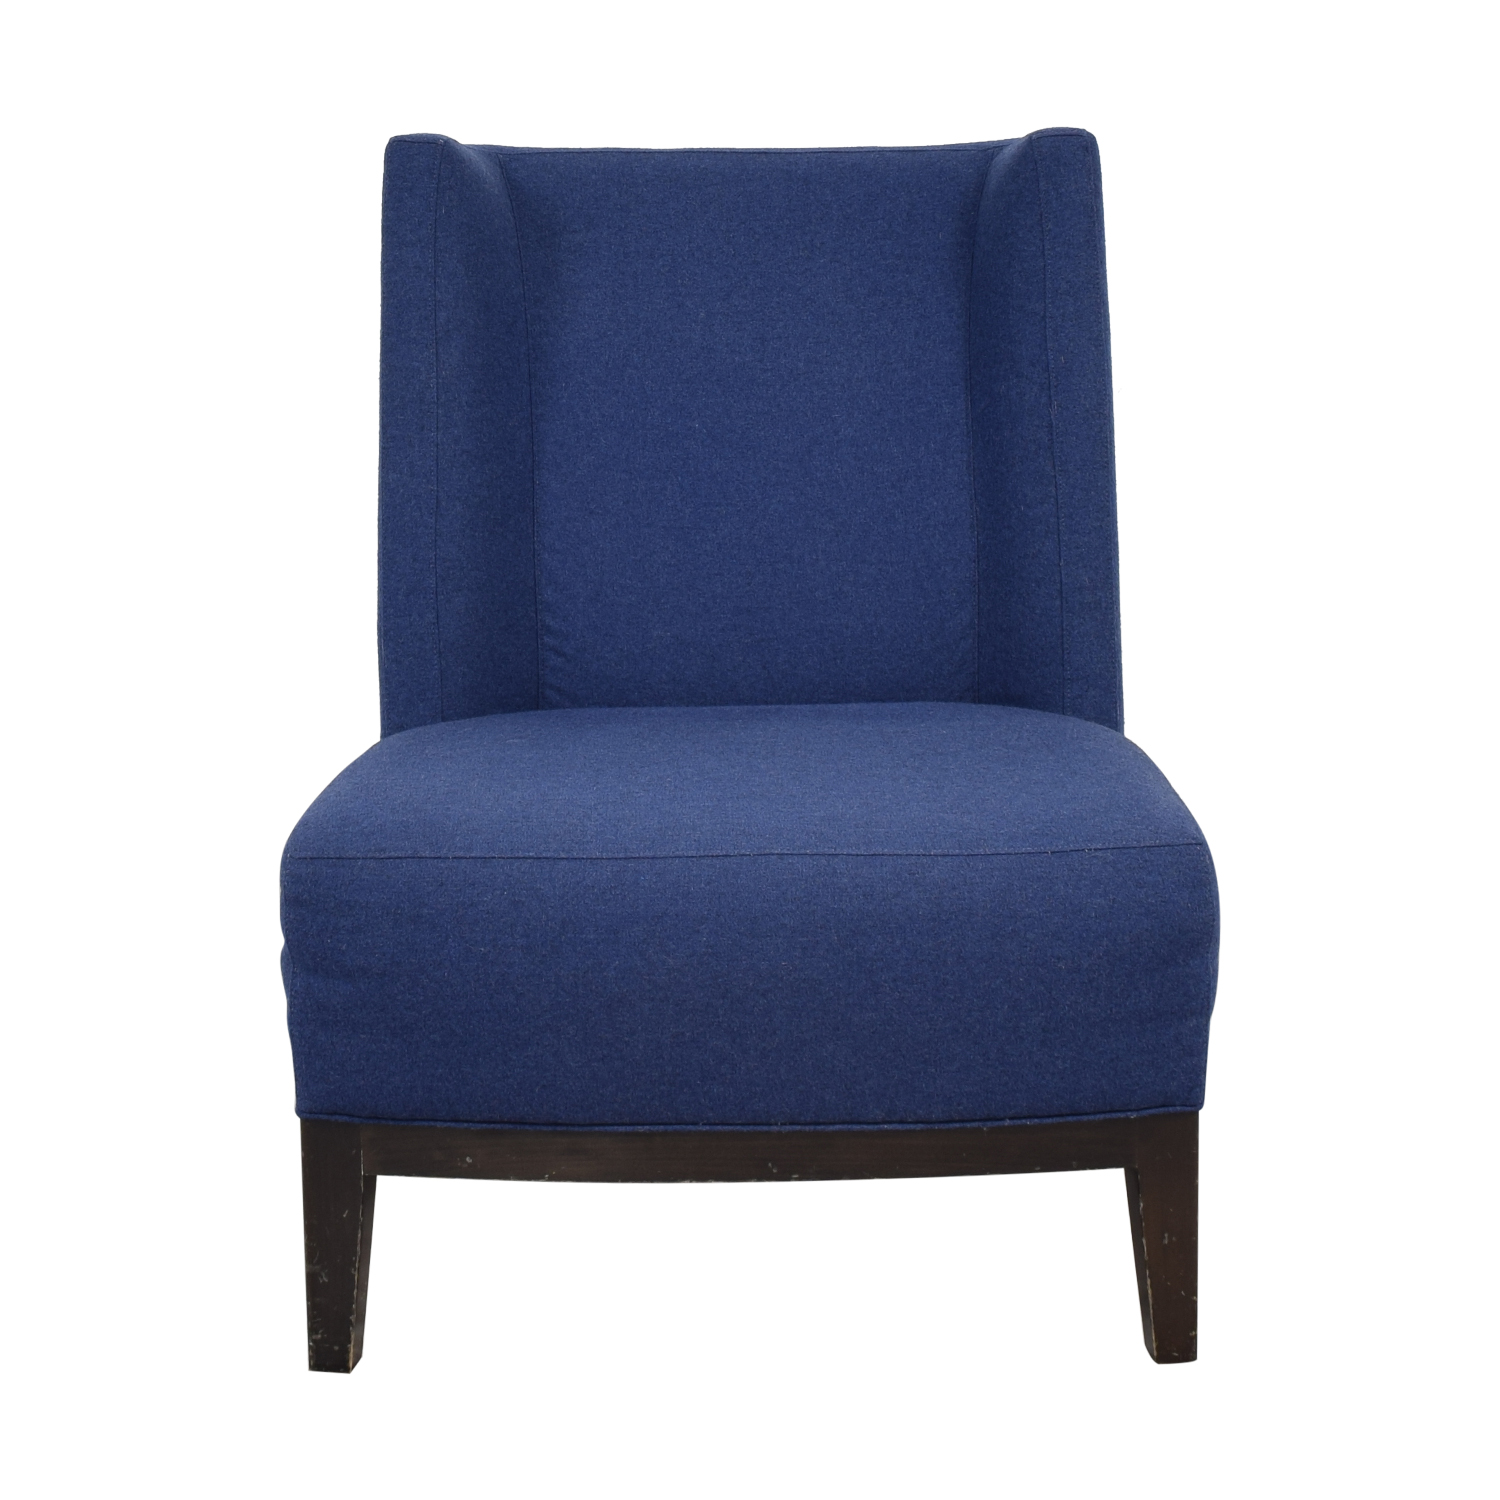 Lillian August Lillian August Baines Accent Chair discount